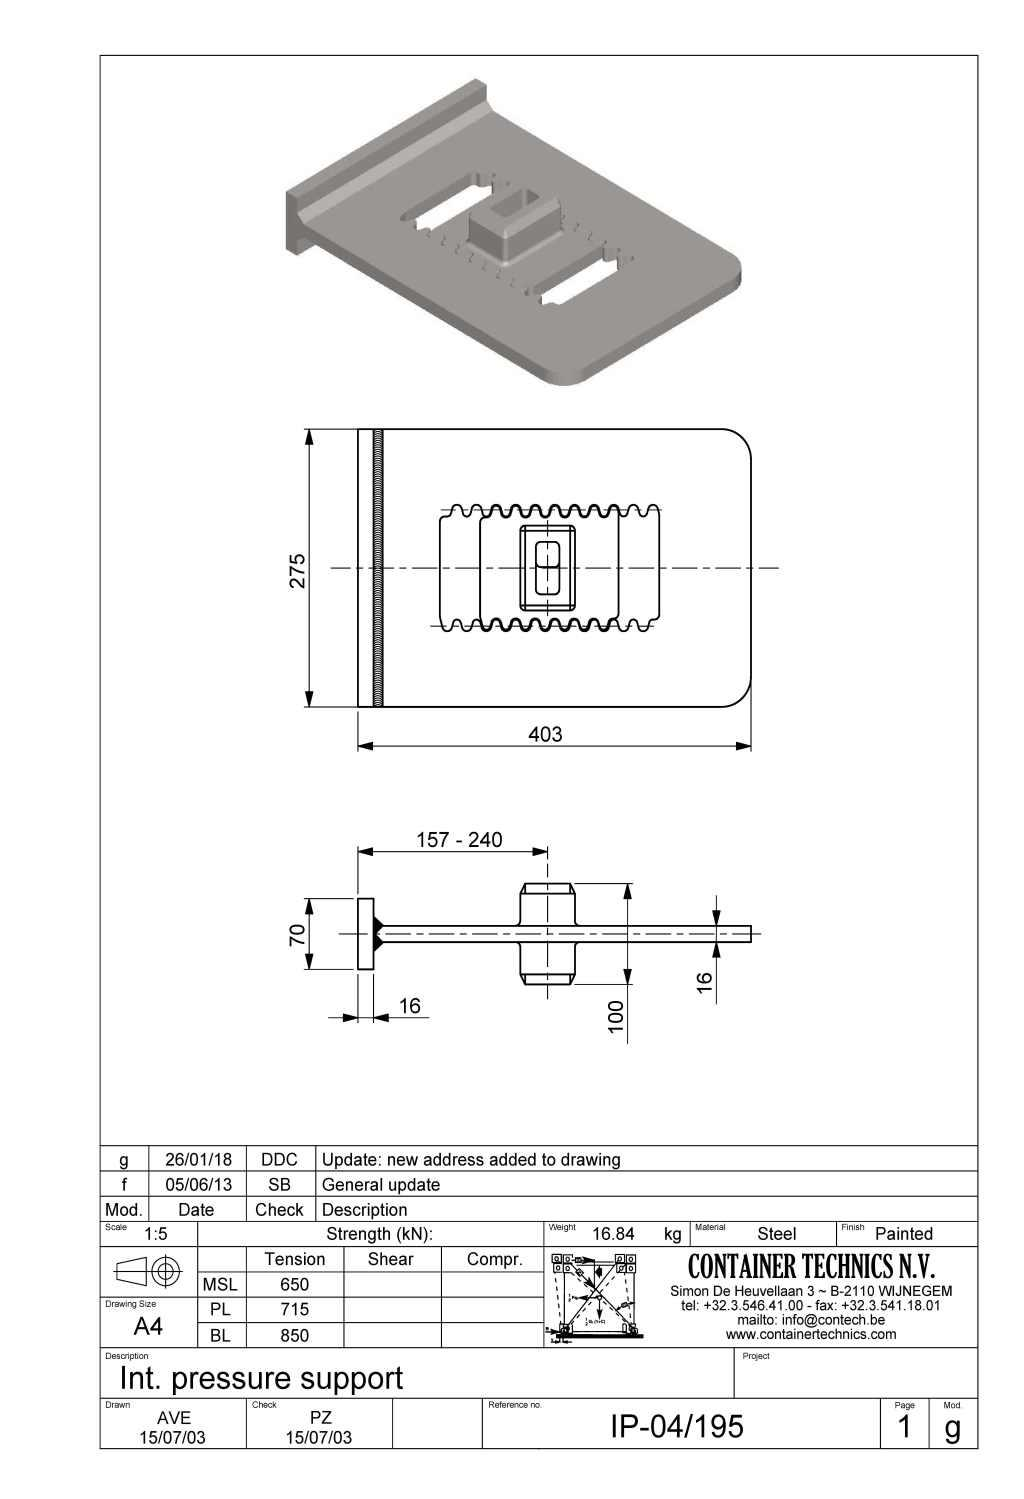 IP-04/195 INTERMEDIATE PRESSURE SUPPORT